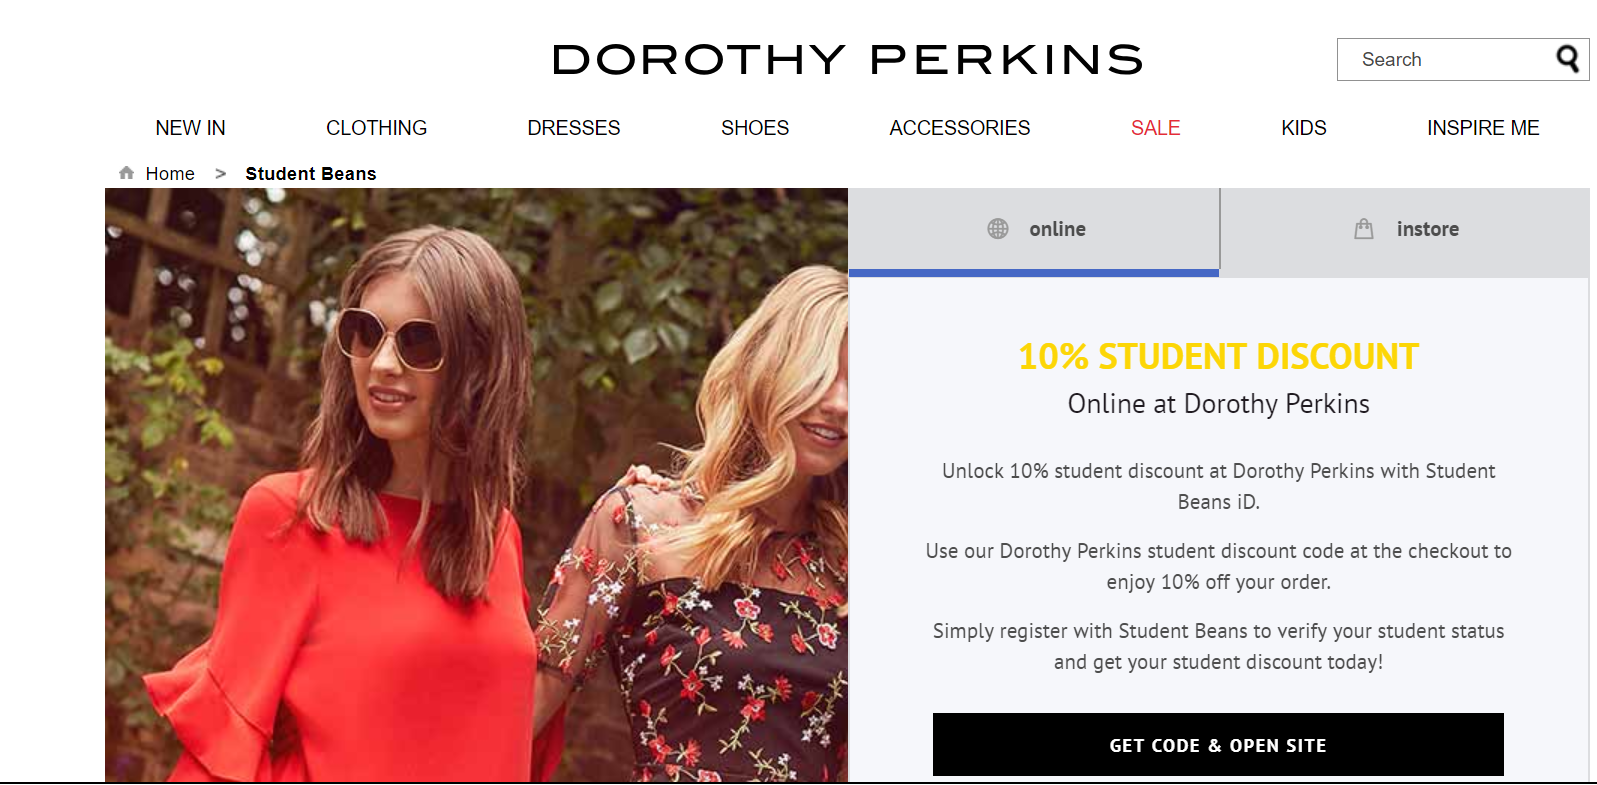 Photo: Screenshot from Dorothy Perkins website